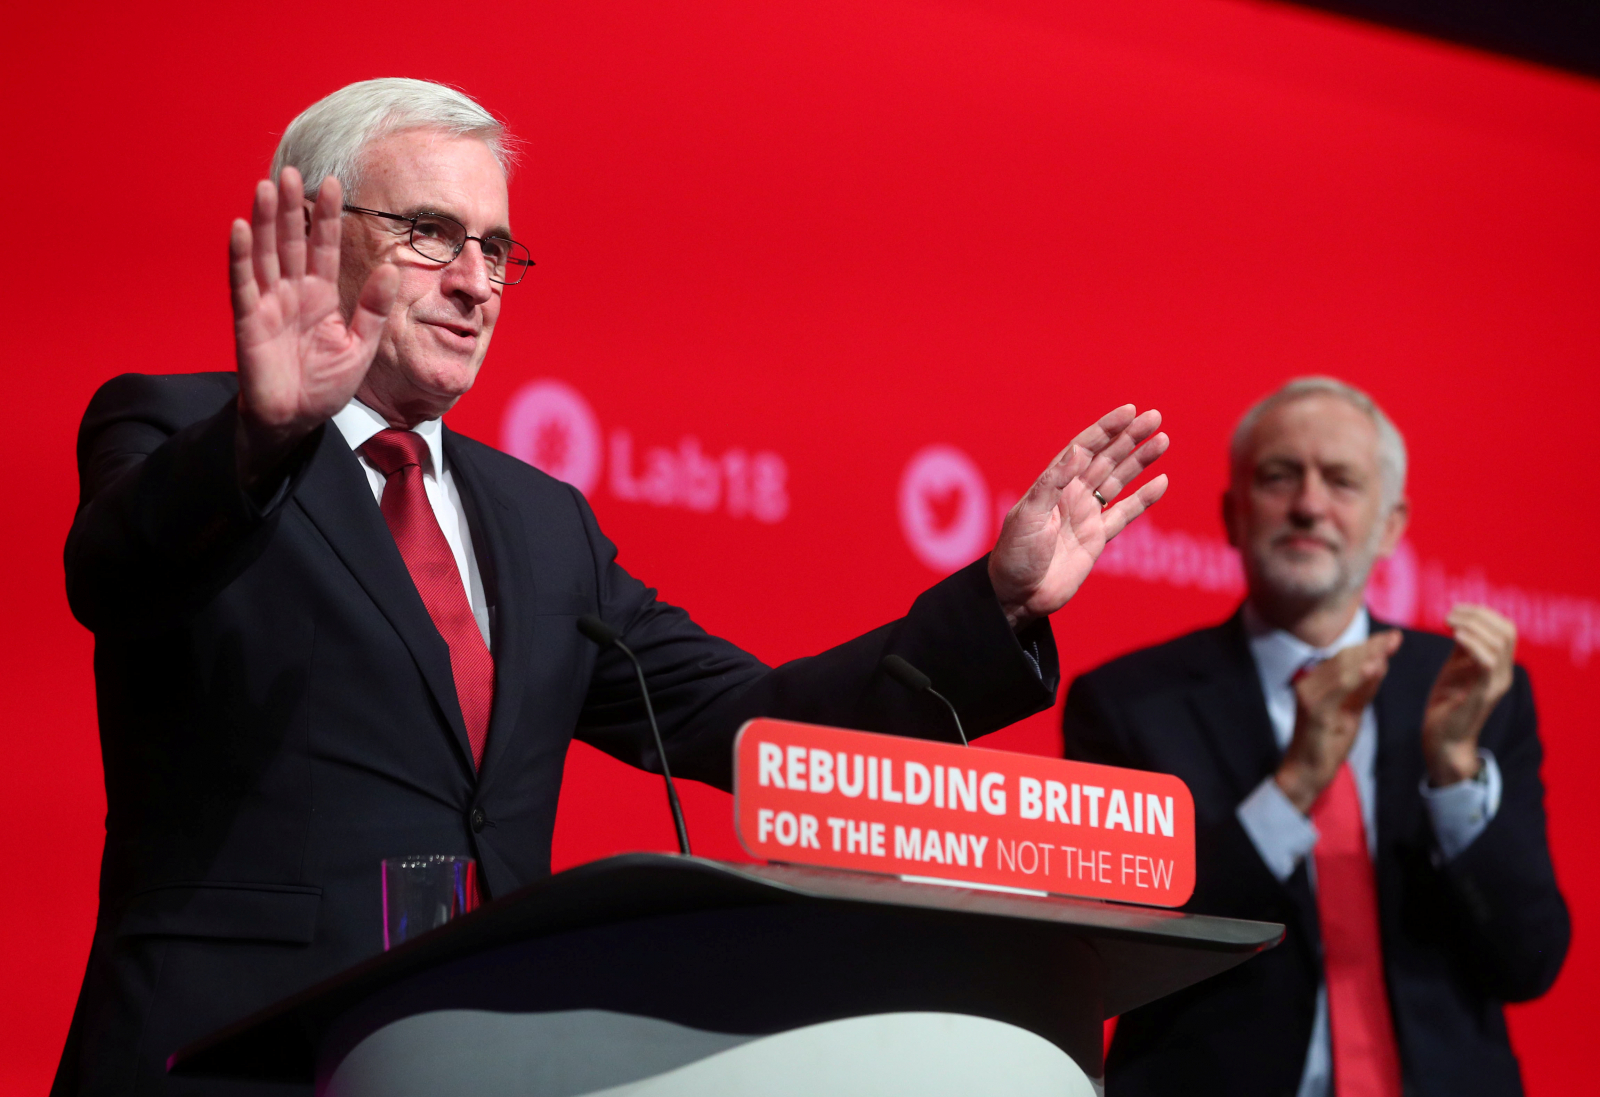 Chancellor of the Exchequer John McDonnell